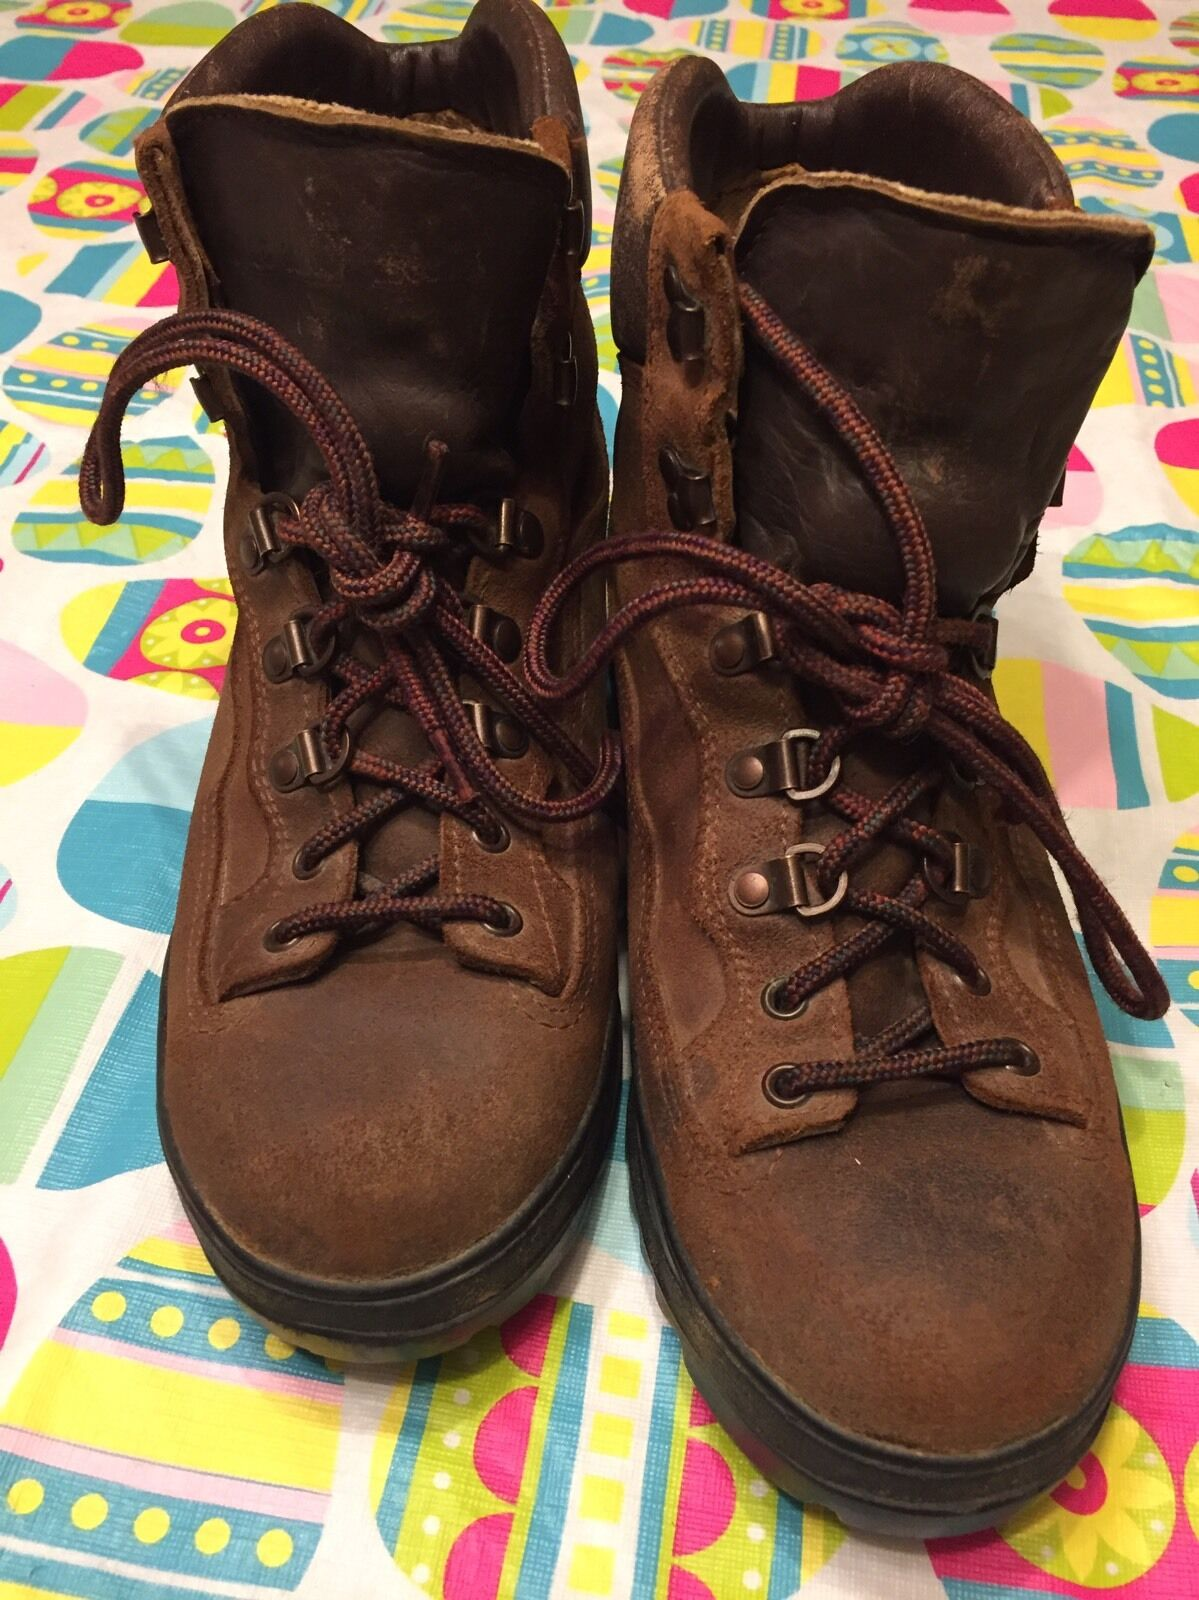 VINTAGE DANNER GoreTex GoreTex DANNER DISTRESSED USA ENGINEER LEATHER BROWN Hiking Stiefel 9.5 EE 025ce7